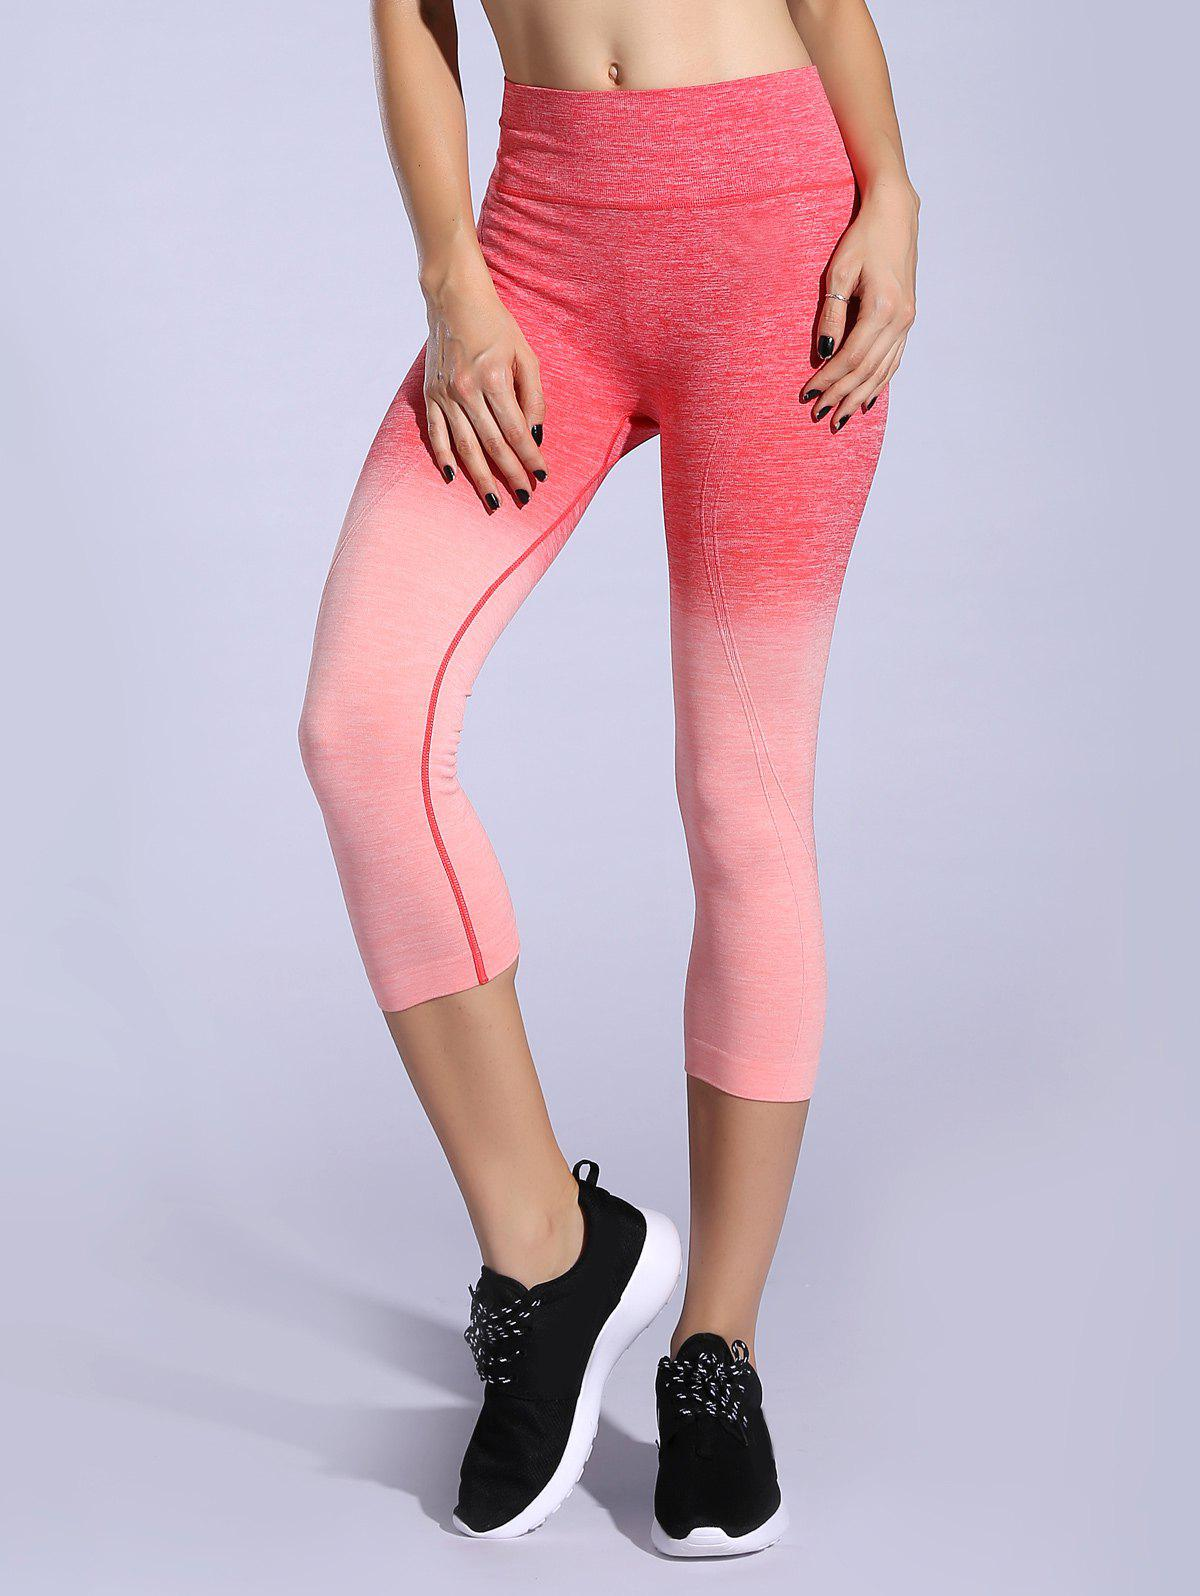 Stretchy Ombre Space-Dyed Sporty Leggings  space dyed racer back ombre tank top